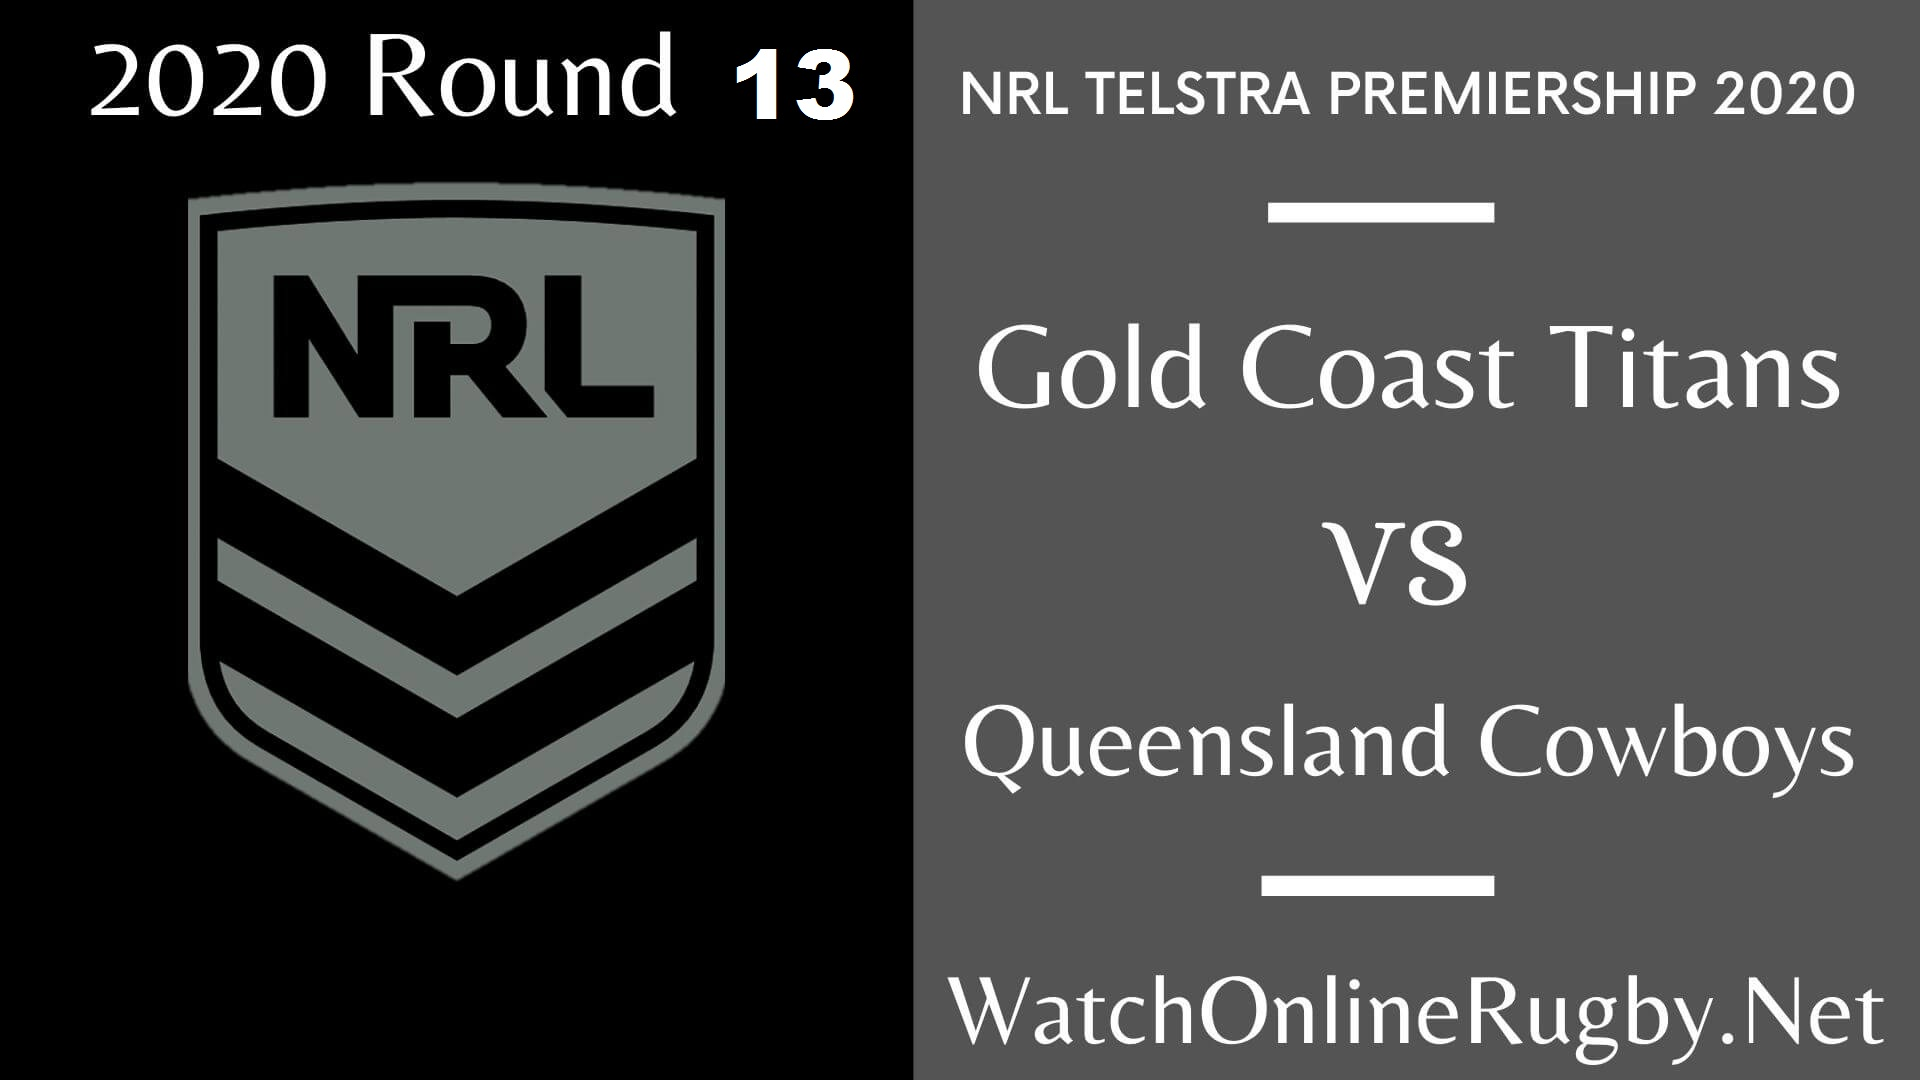 Coast Titans Vs Queensland Cowboys Highlights 2020 Round 13 NRL Rugby